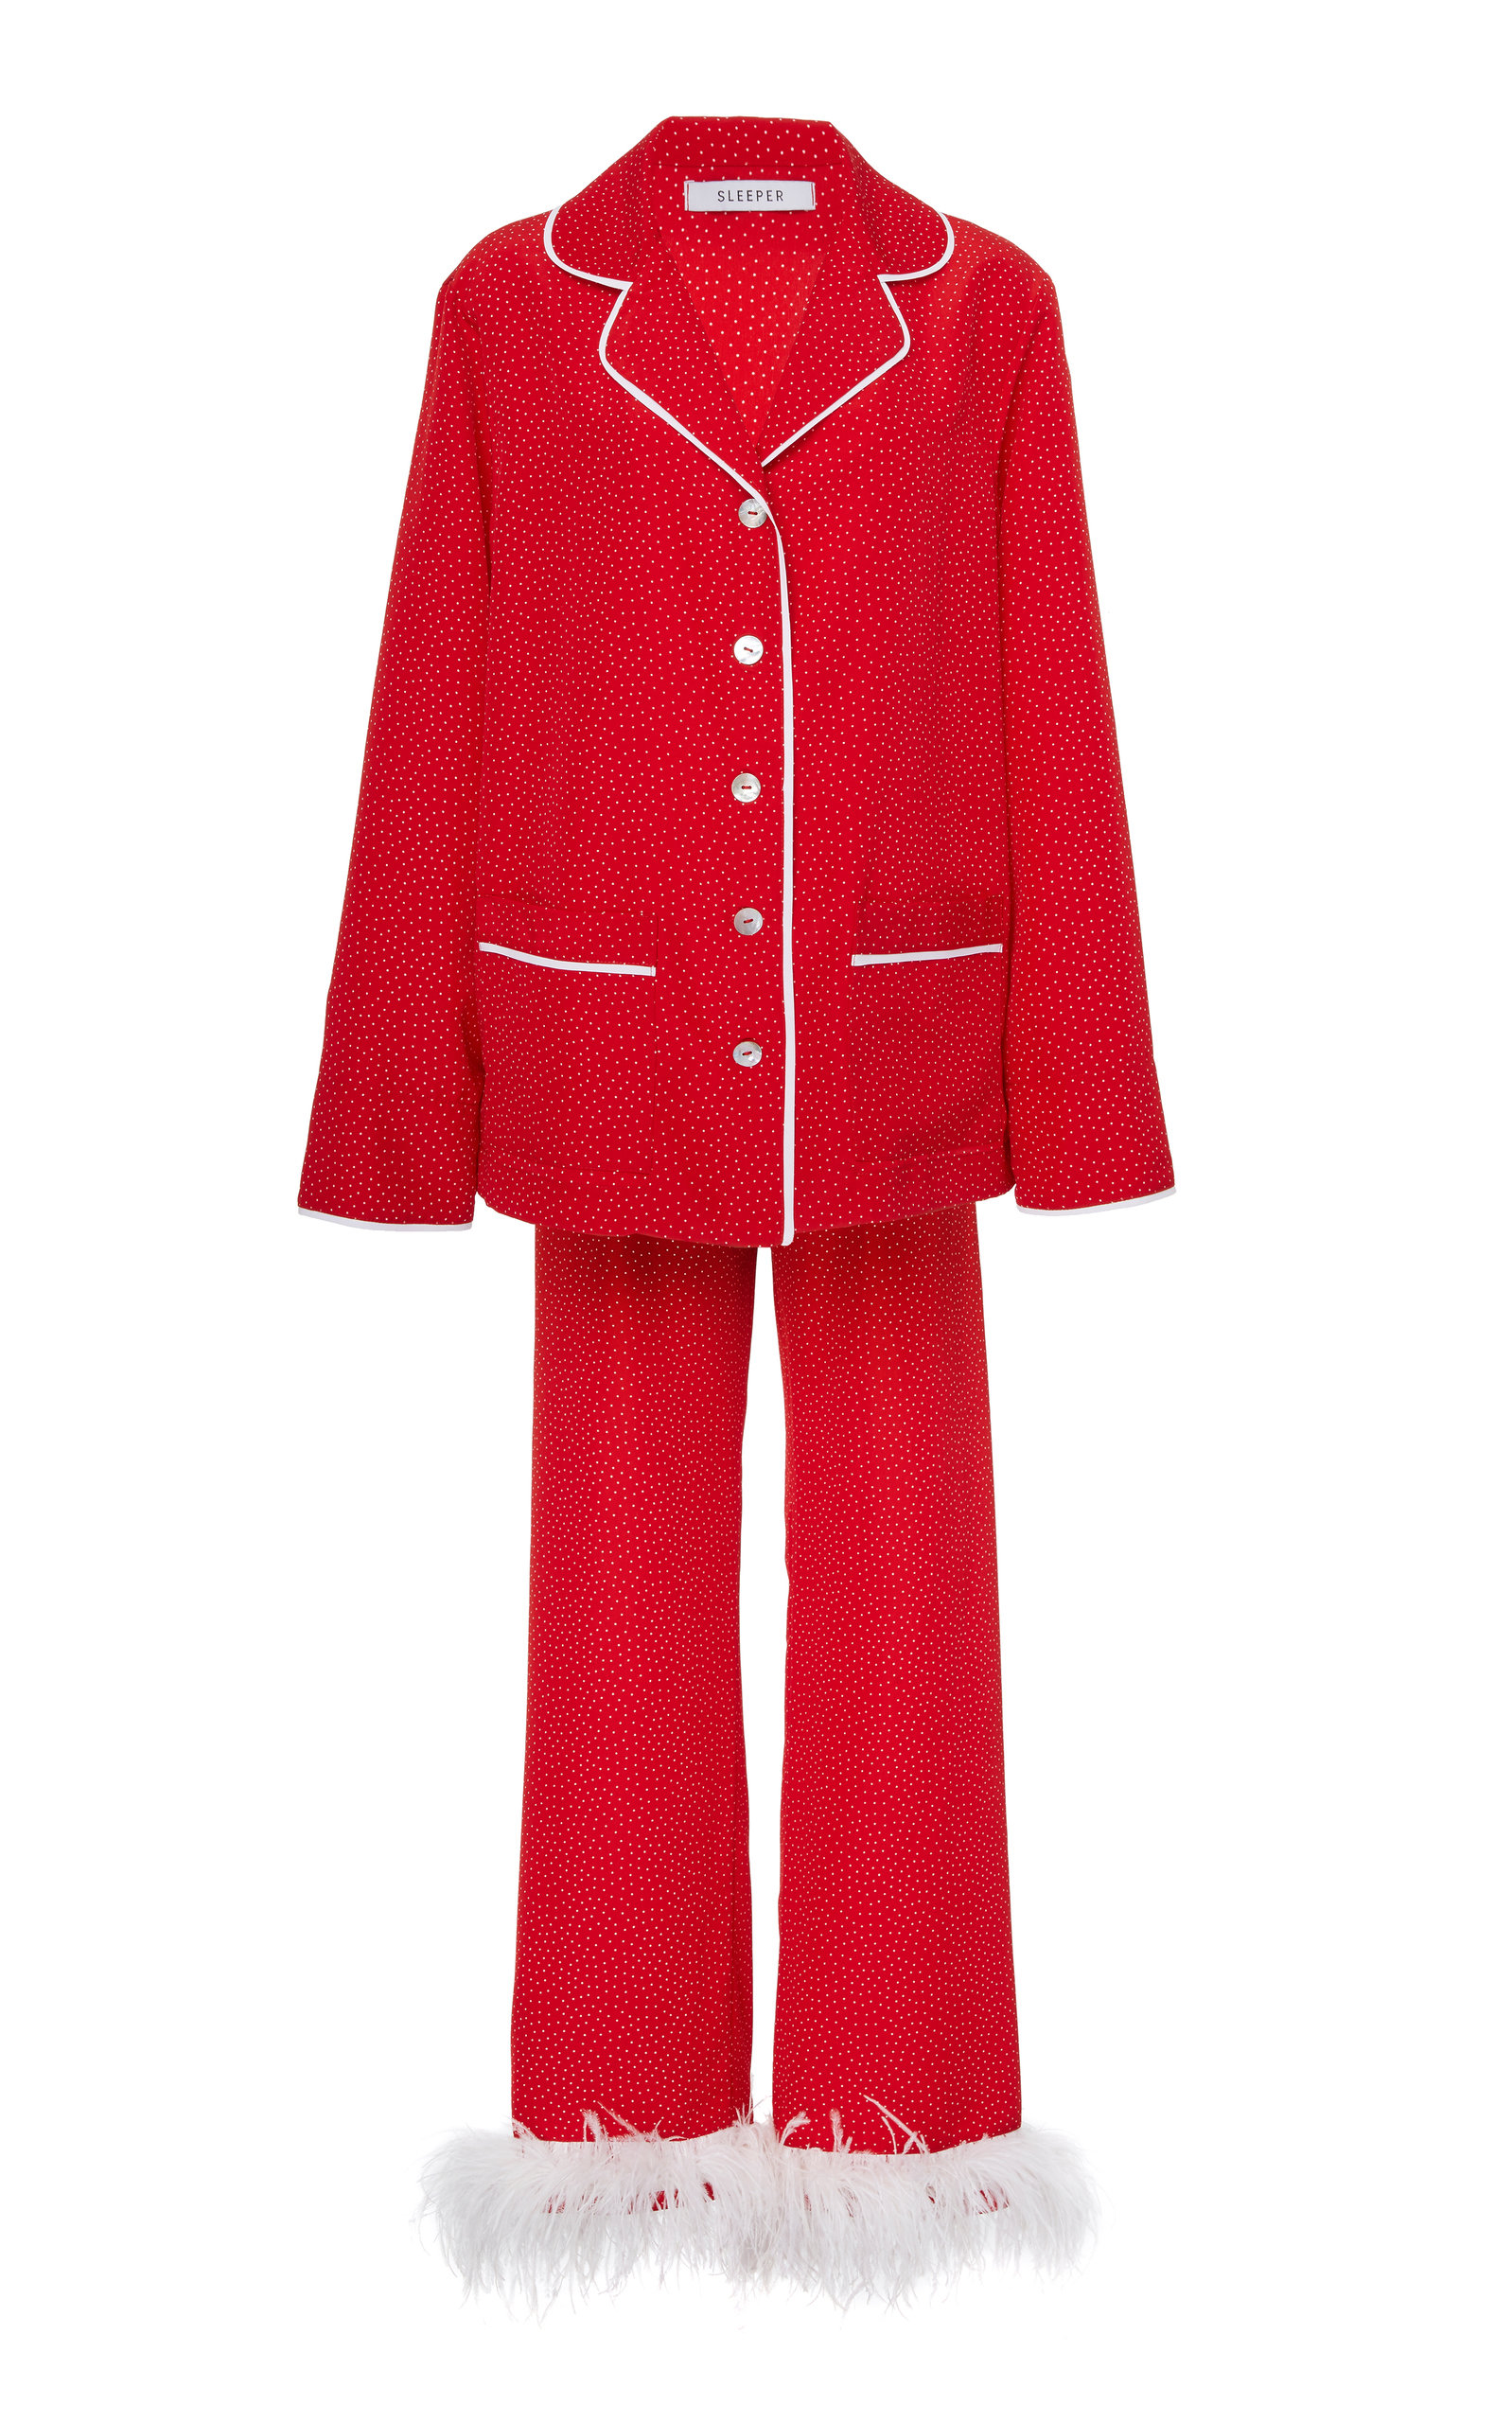 SLEEPER Ostrich Feather-Trimmed Satin Pajama Set in Red